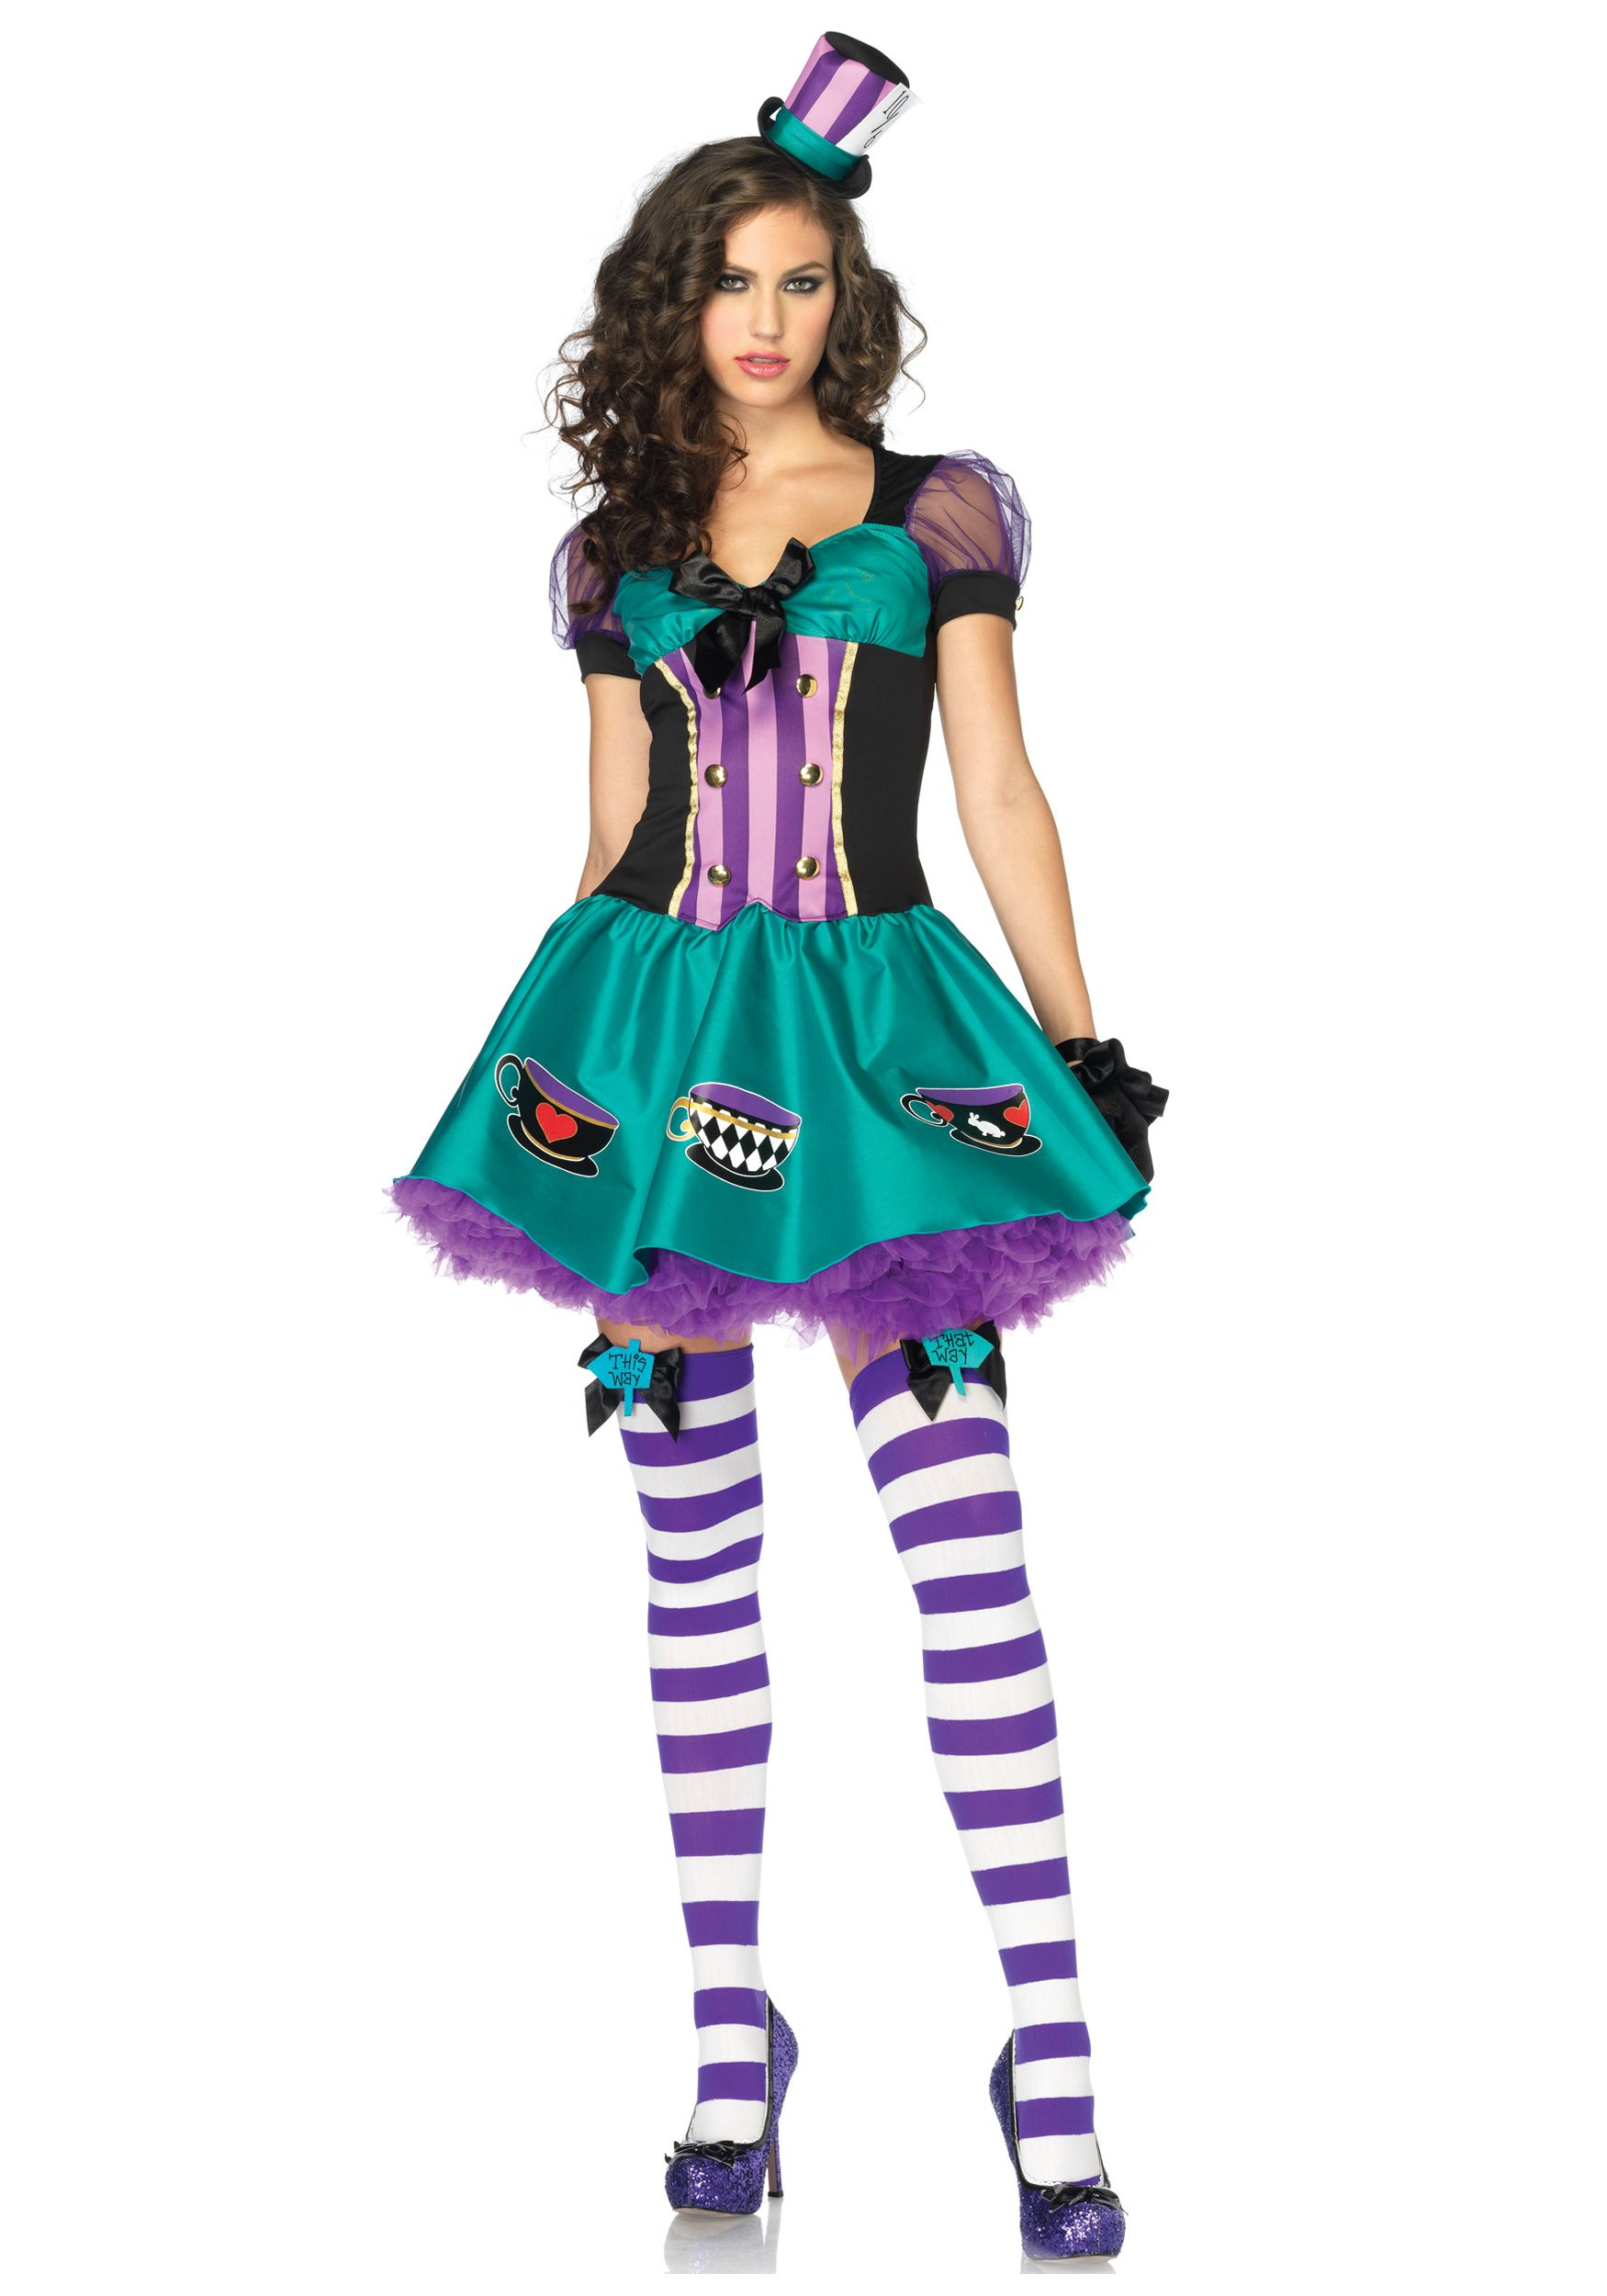 a5d55b3d5a Teacup Mad Hatter Costume   Fall/Halloween   Mad hatter halloween ...